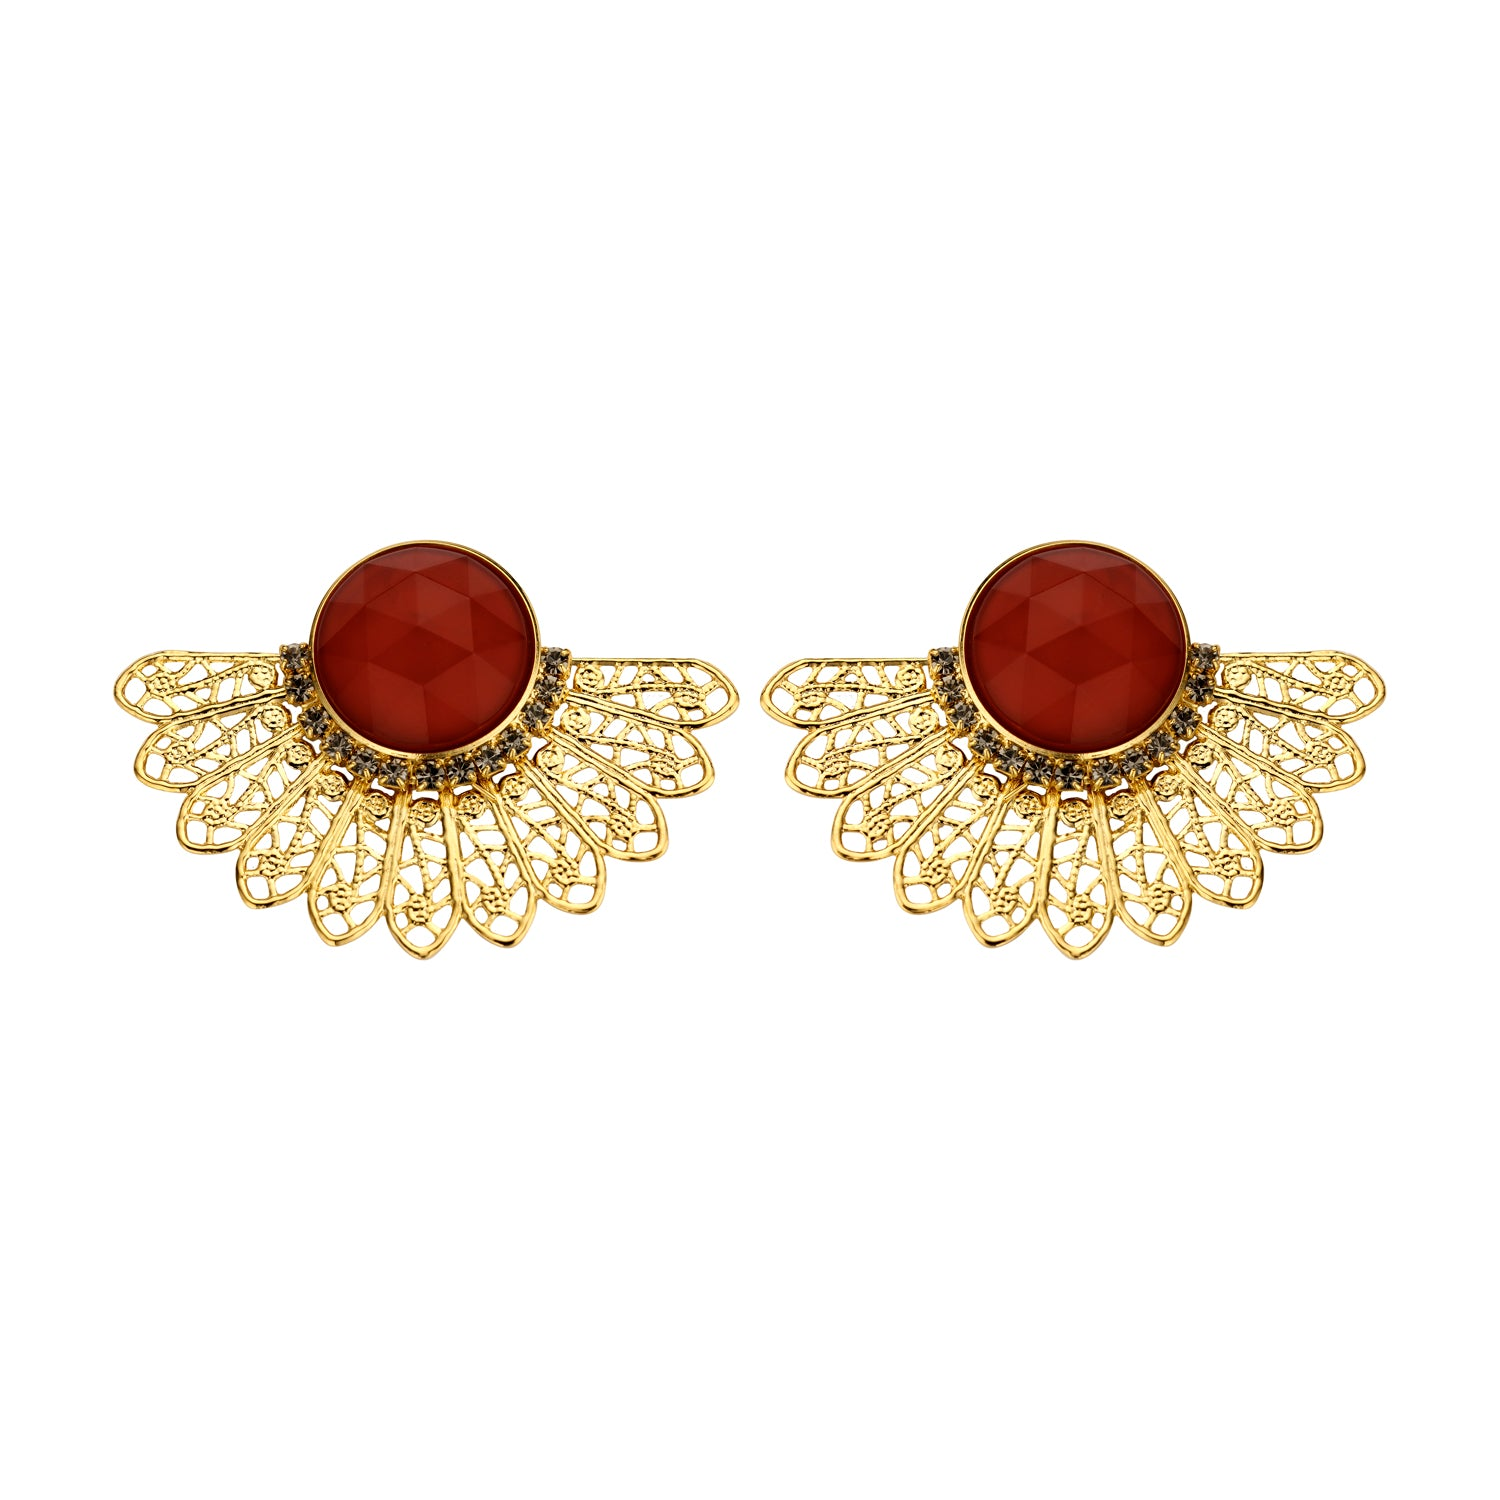 Van shortie bordeaux earrings